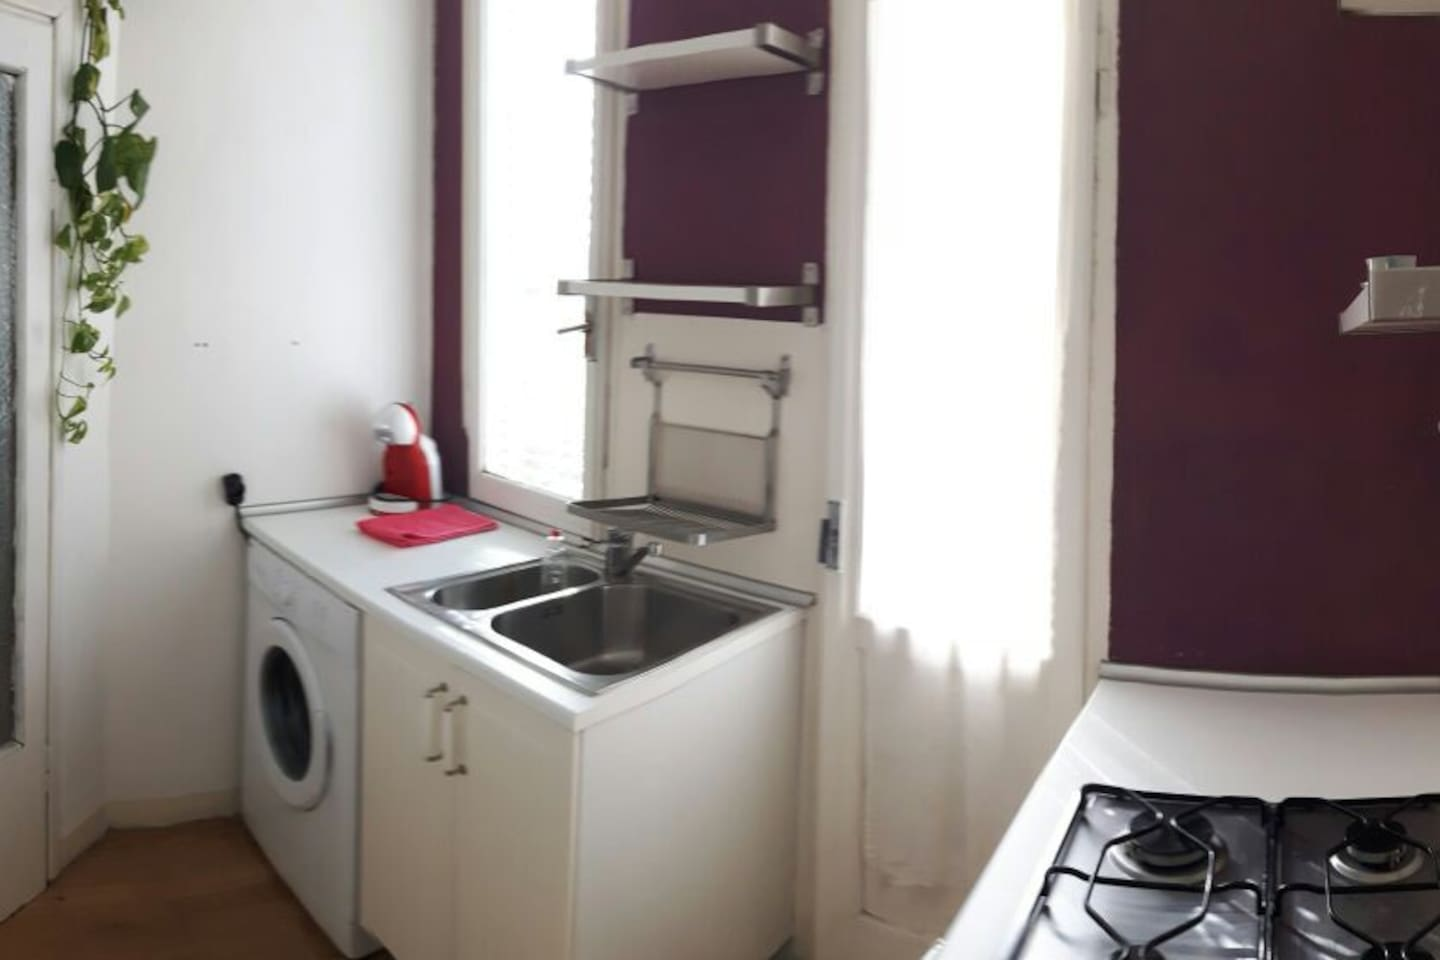 Cucina restyling